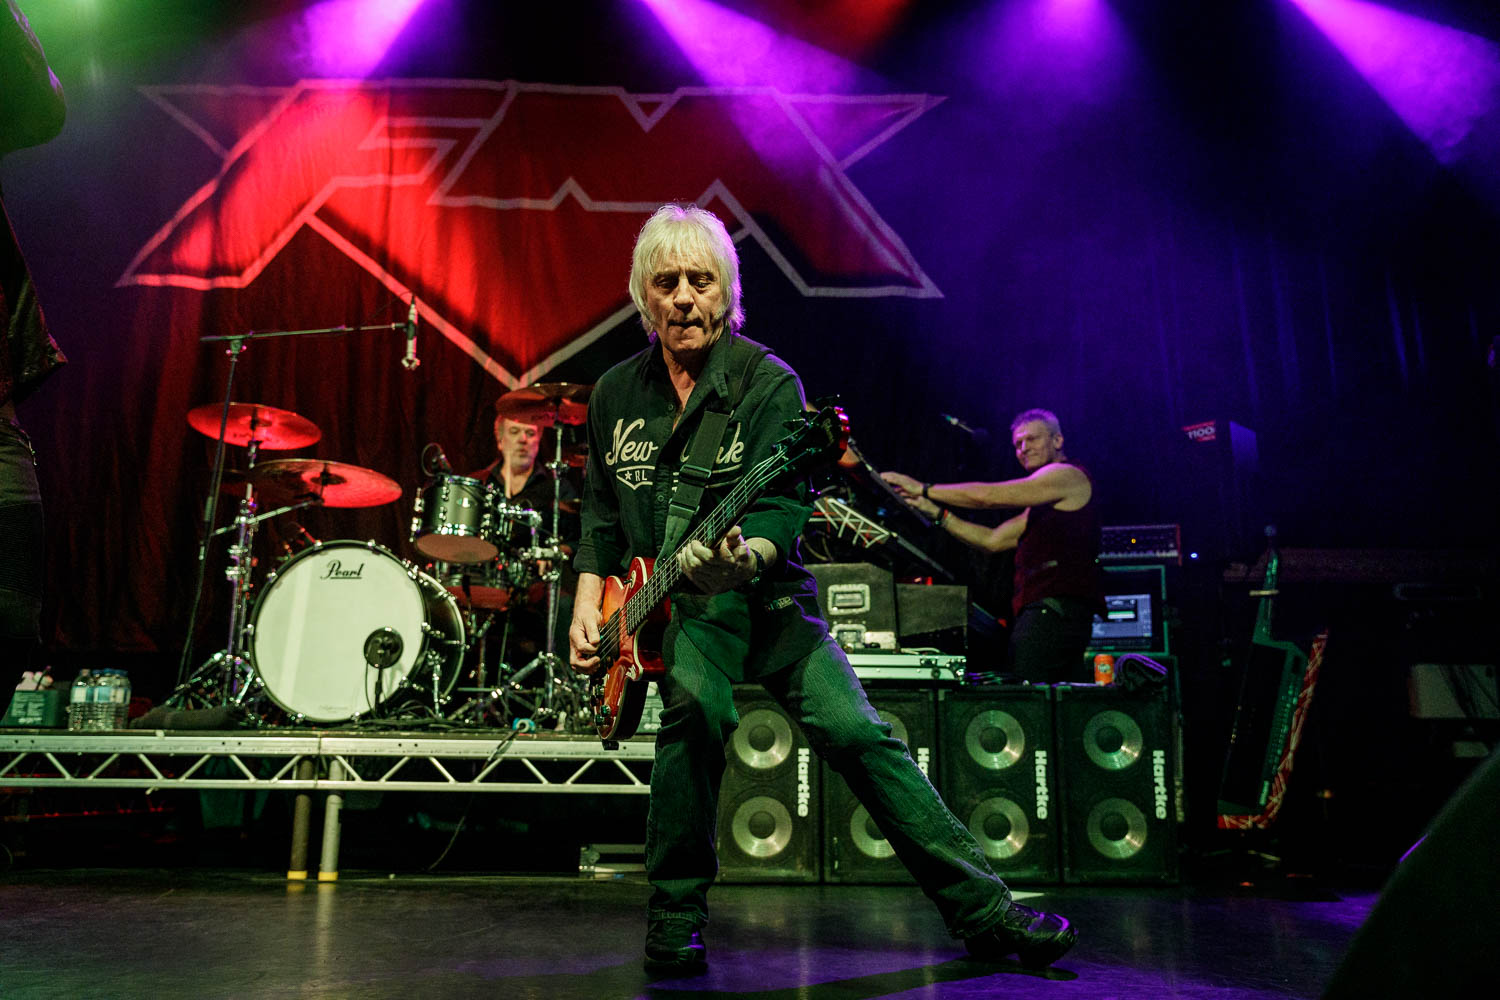 FM at O2 Ritz in Manchester on April 7th 2019.